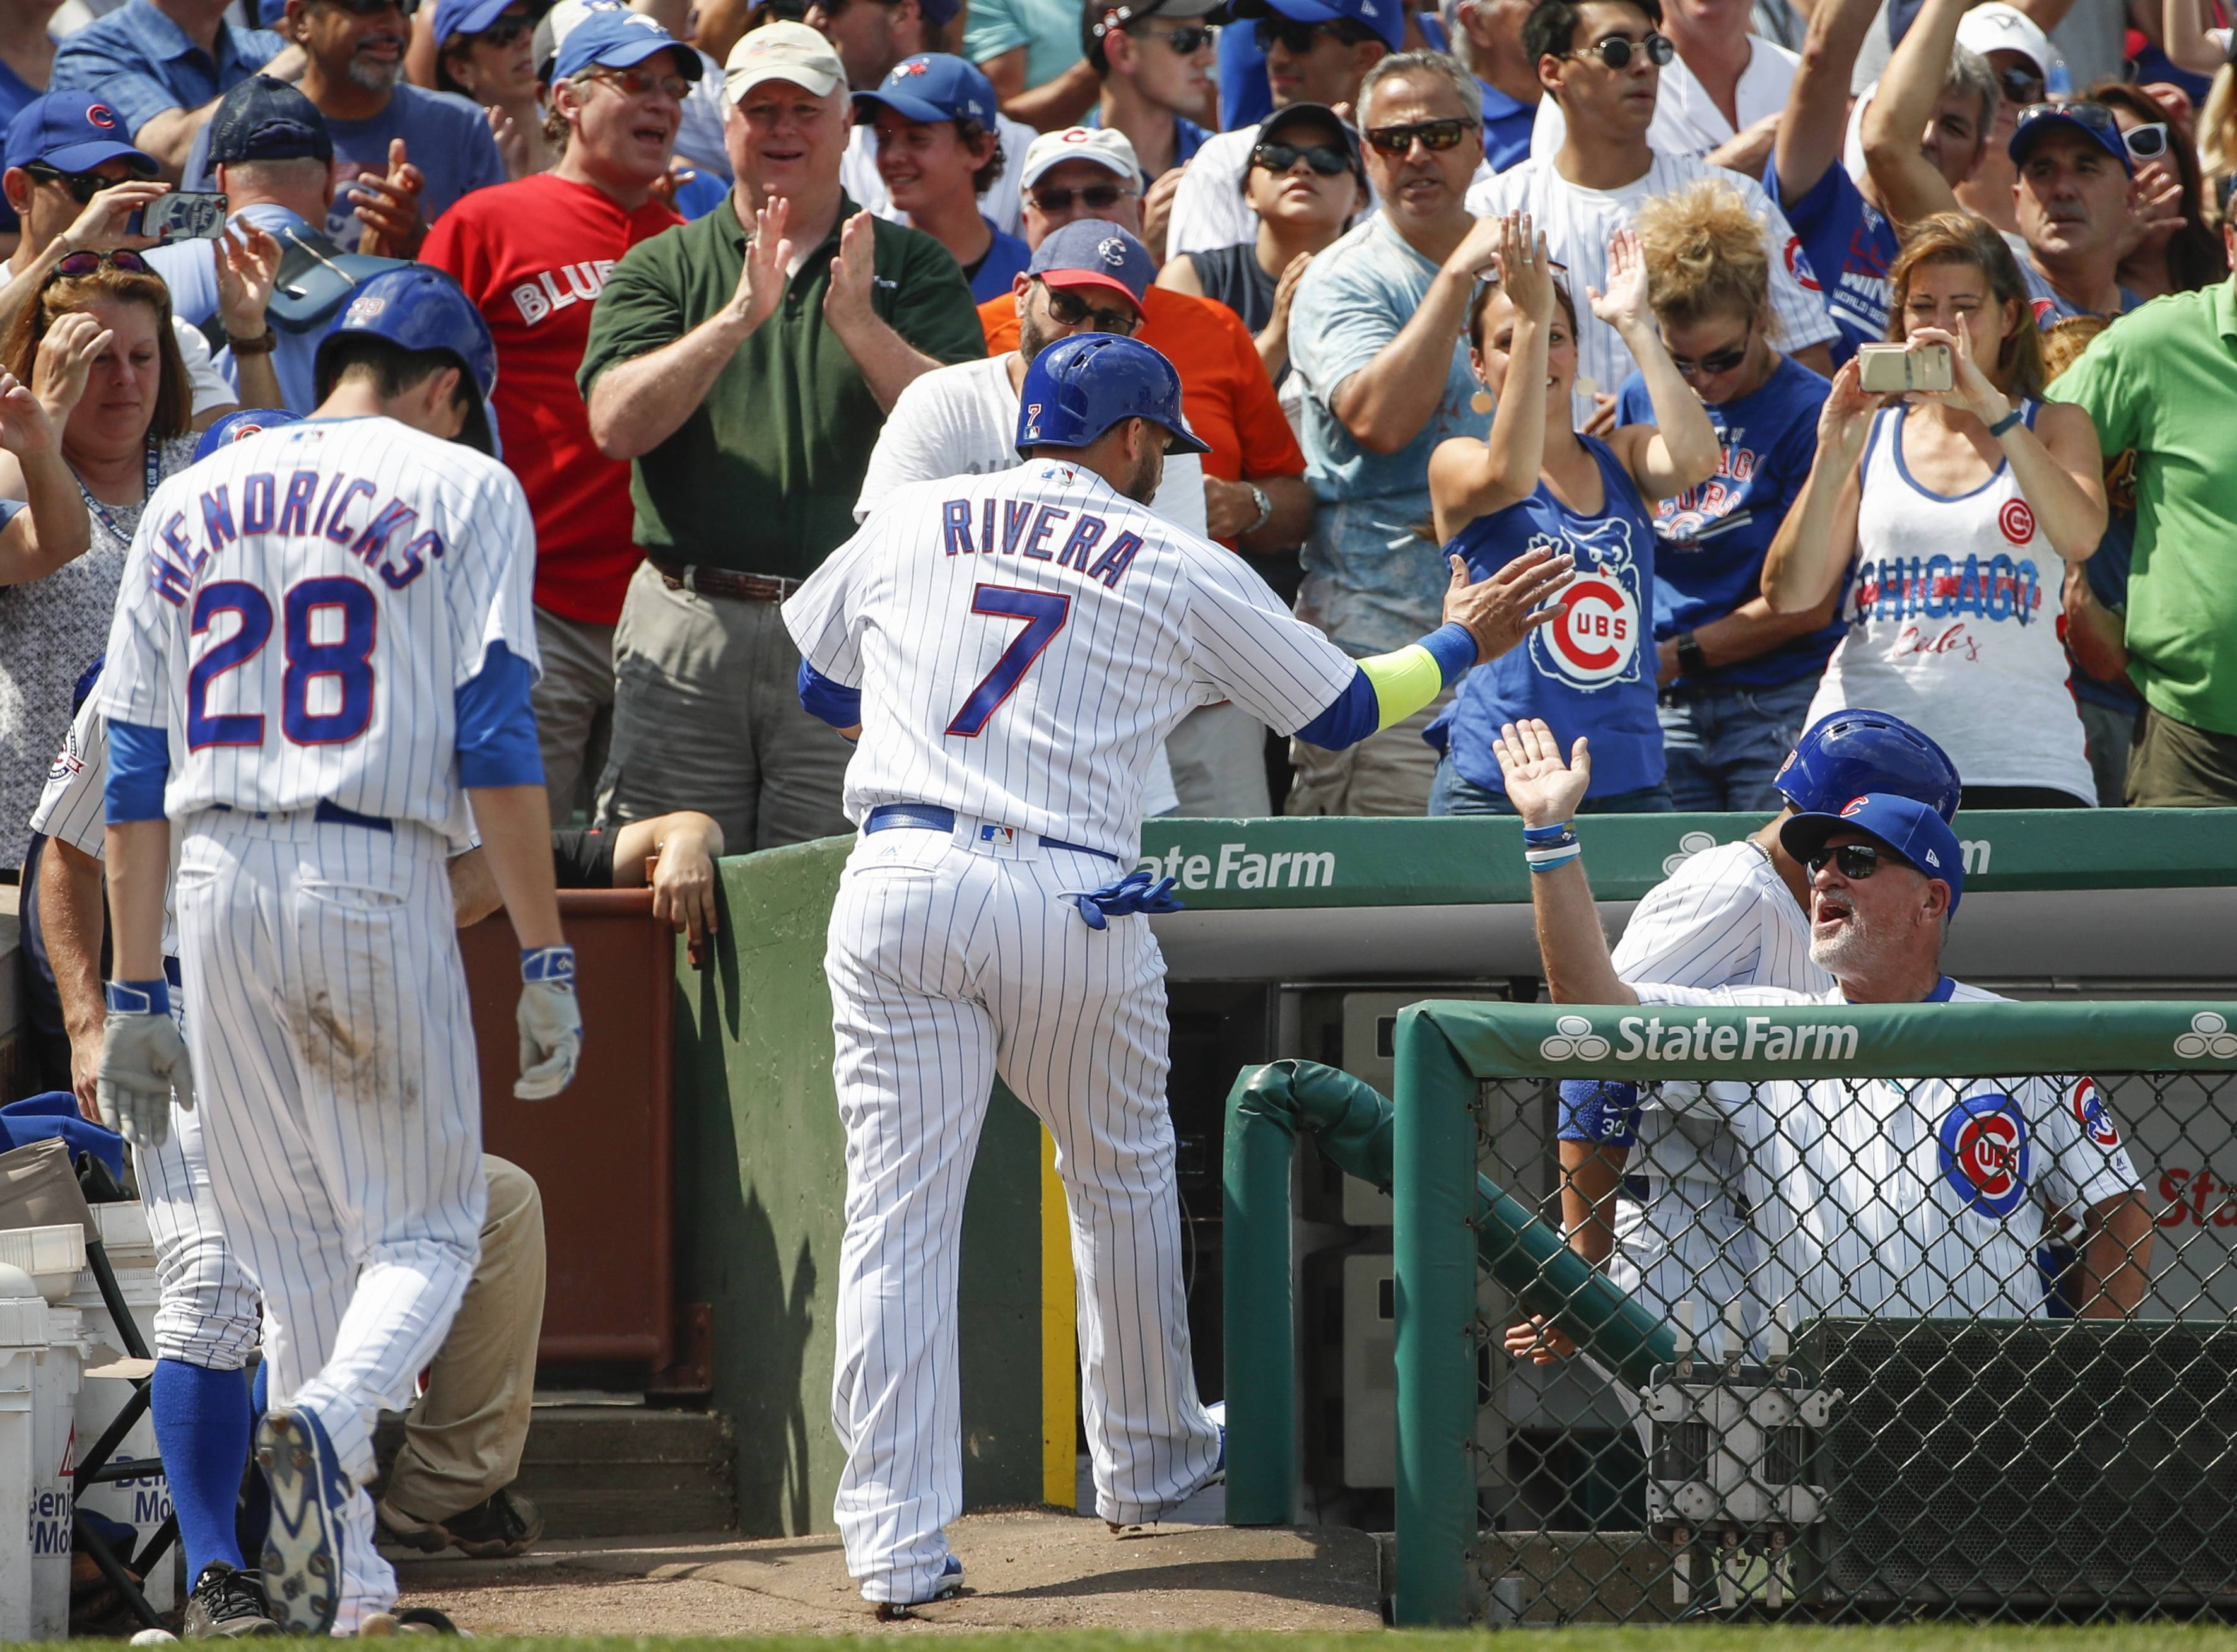 Chicago Cubs' Rene Rivera, center, celebrates after scoring with manager Joe Maddon, right, on a three-RBI double hit by Albert Almora Jr. off Toronto Blue Jays' Marco Estrada during the third inning of a baseball game, Sunday, Aug. 20, 2017, in Chicago.